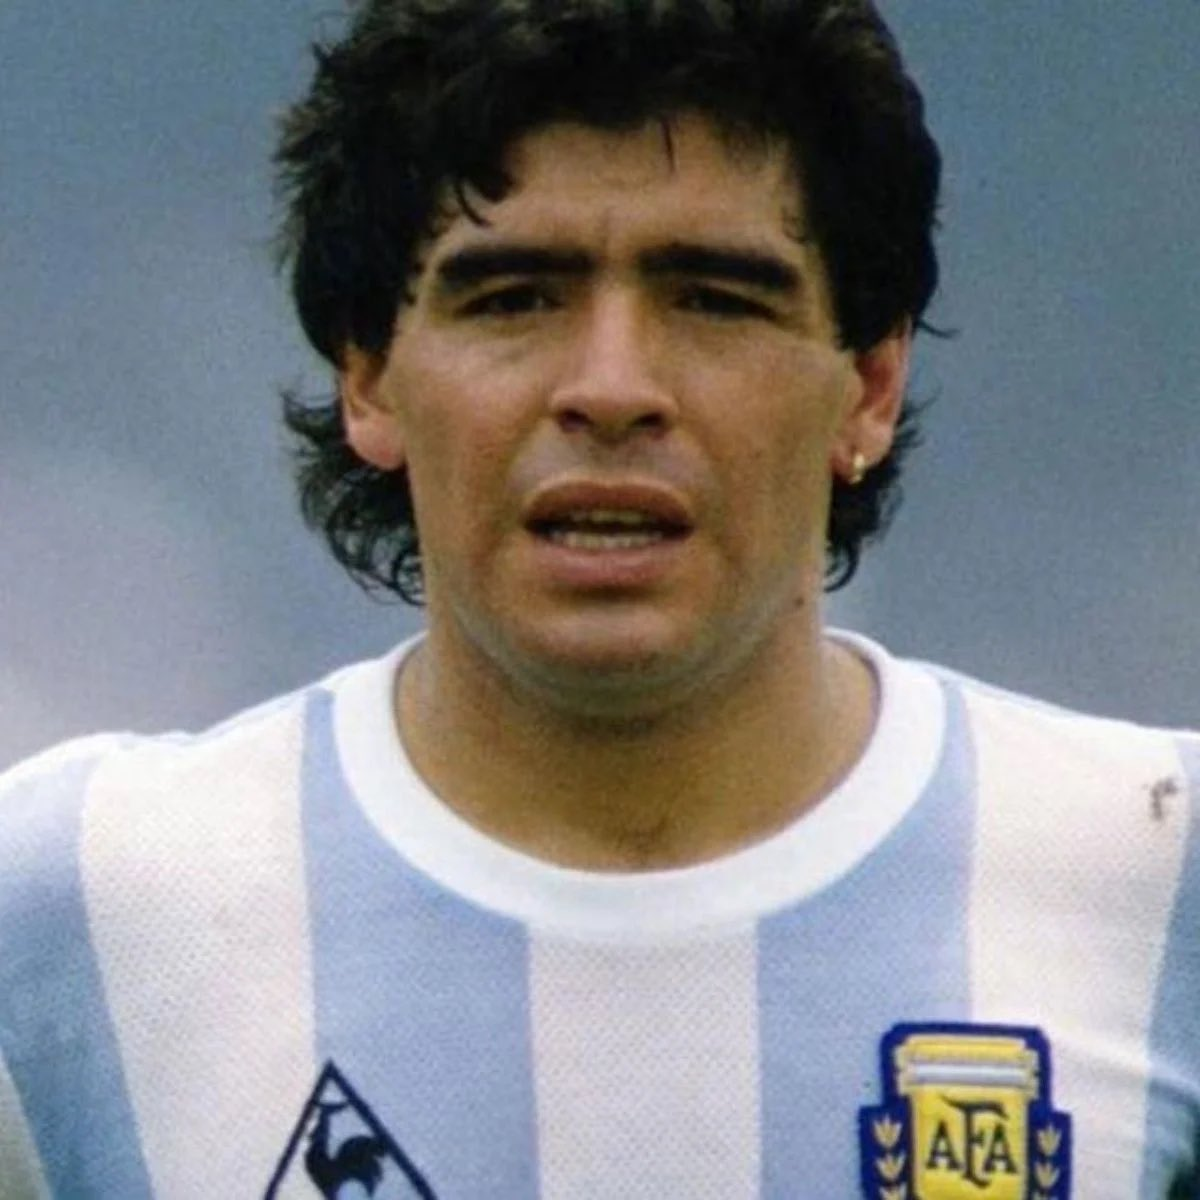 Never struck me as the nicest person but RIP to the greatest footballer of all time (puts tin hat on) #swfc #Argentina #NapoliMilan